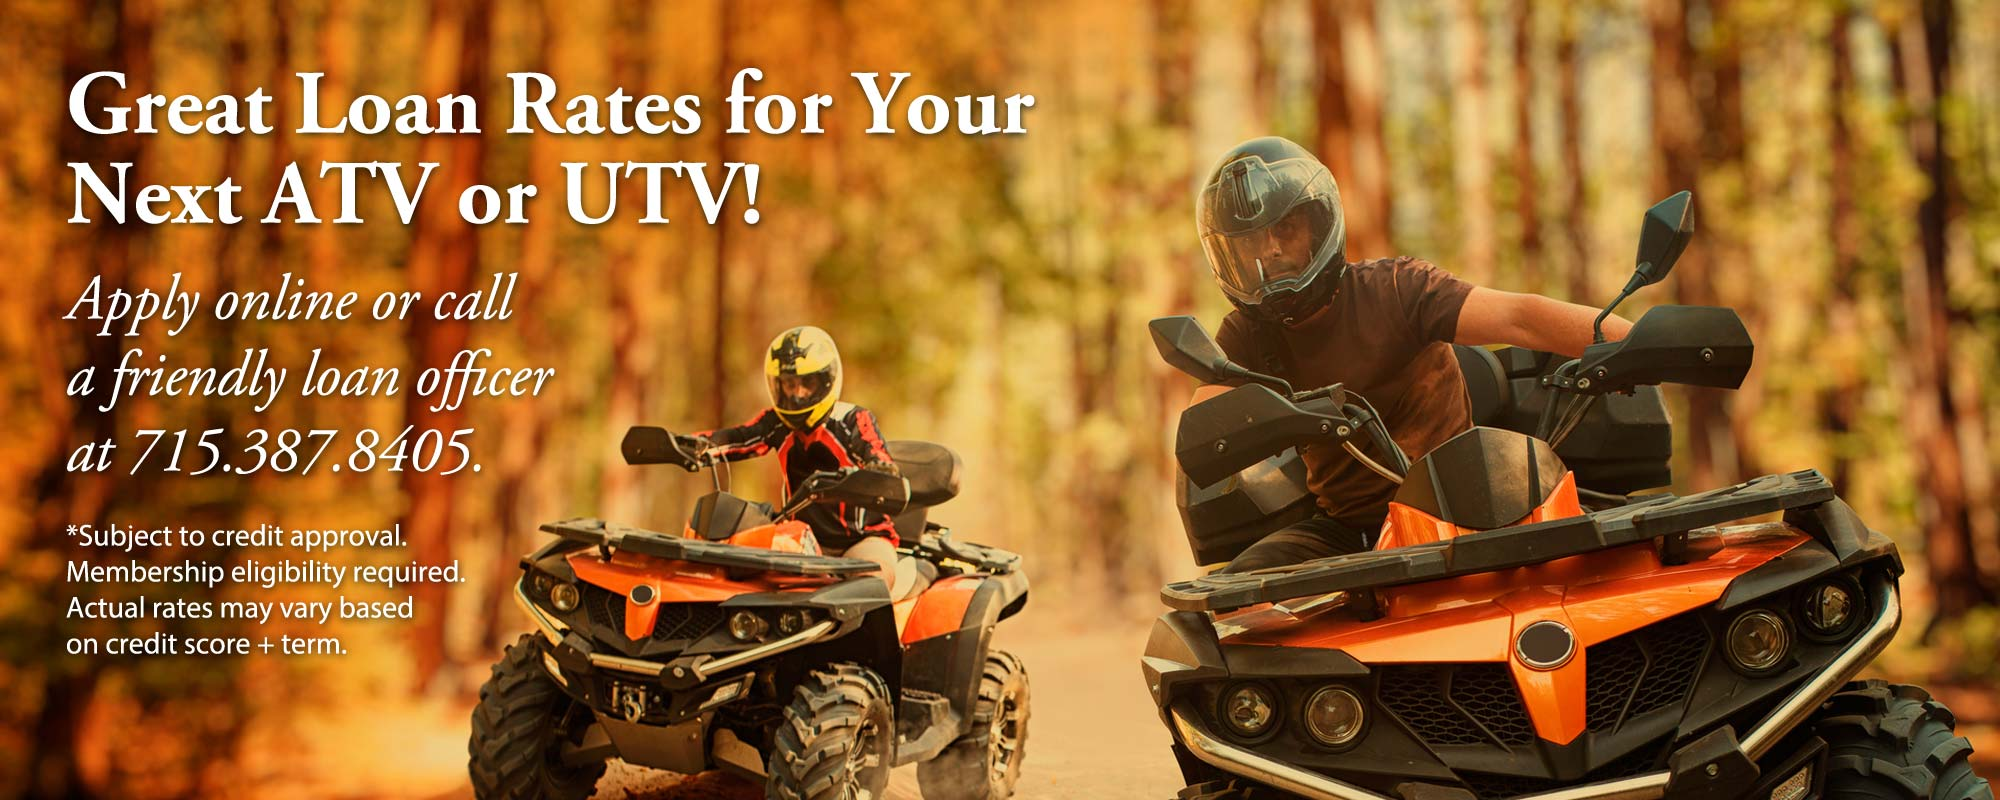 atv and utv loans call 715-387-8405